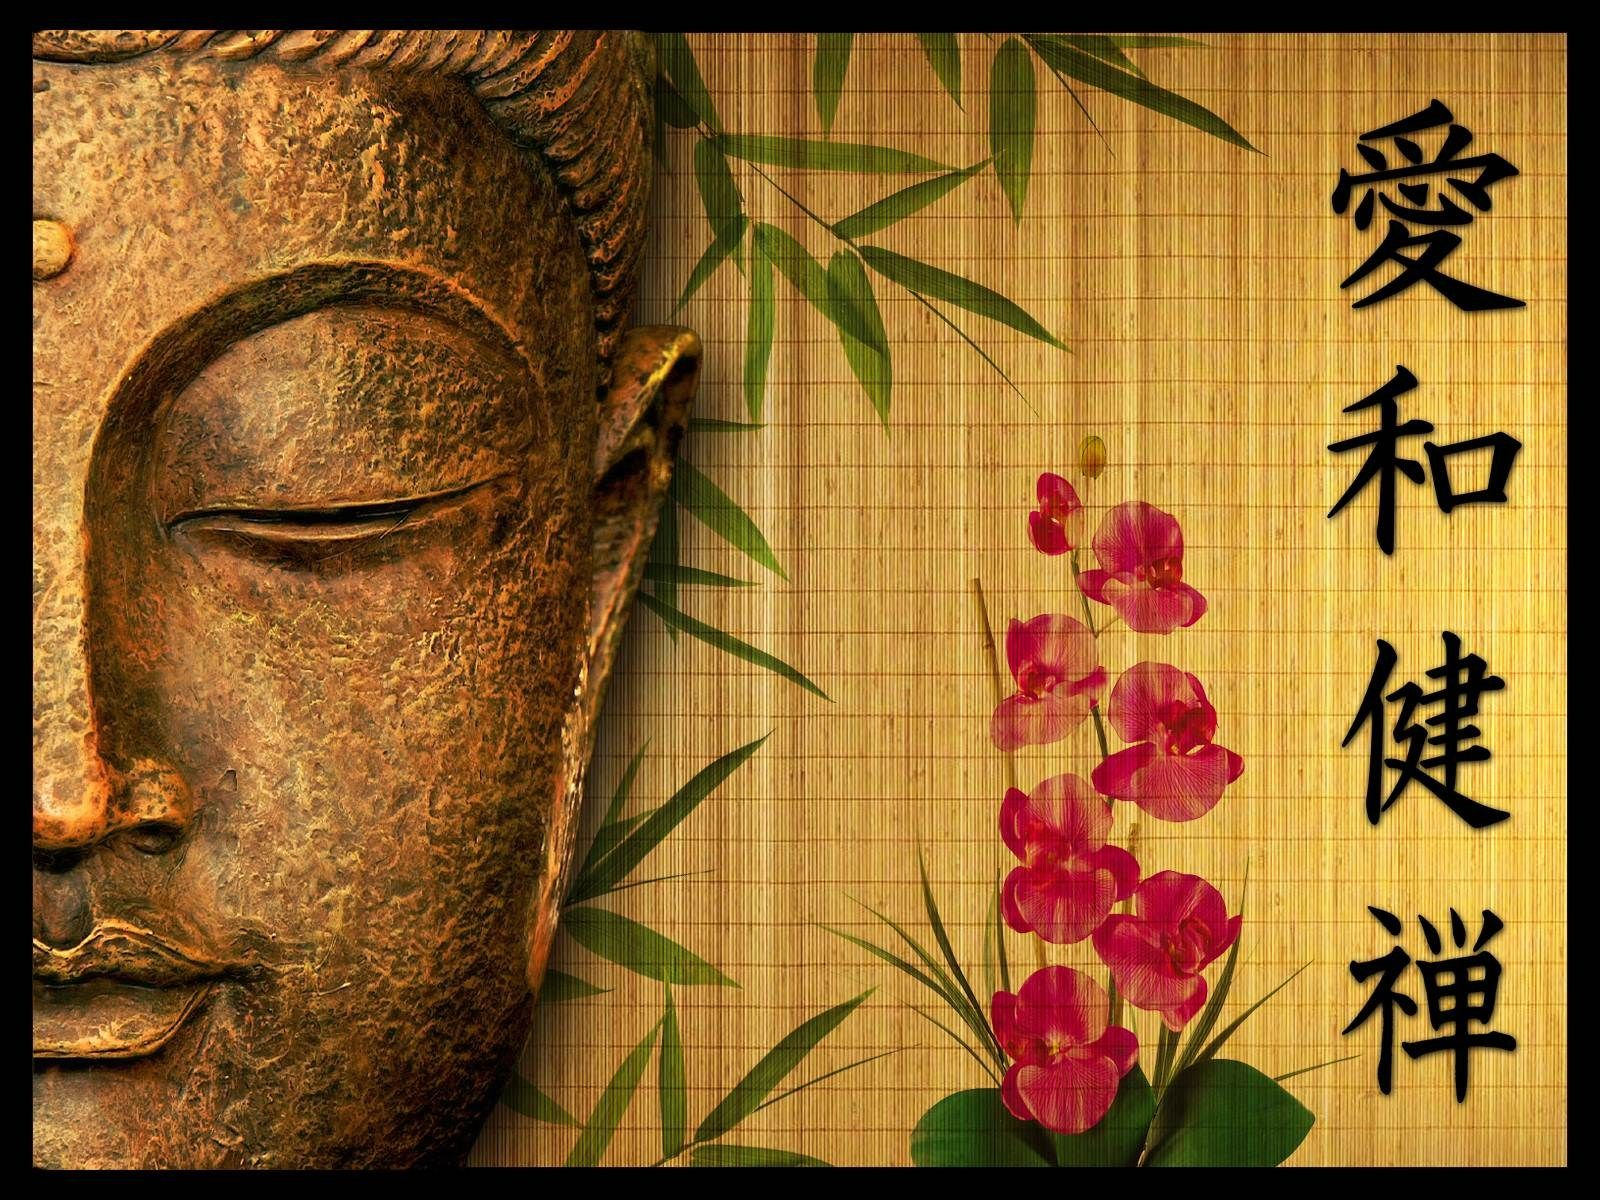 Japanese Zen Buddha Wallpapers   Top Japanese Zen Buddha 1600x1200